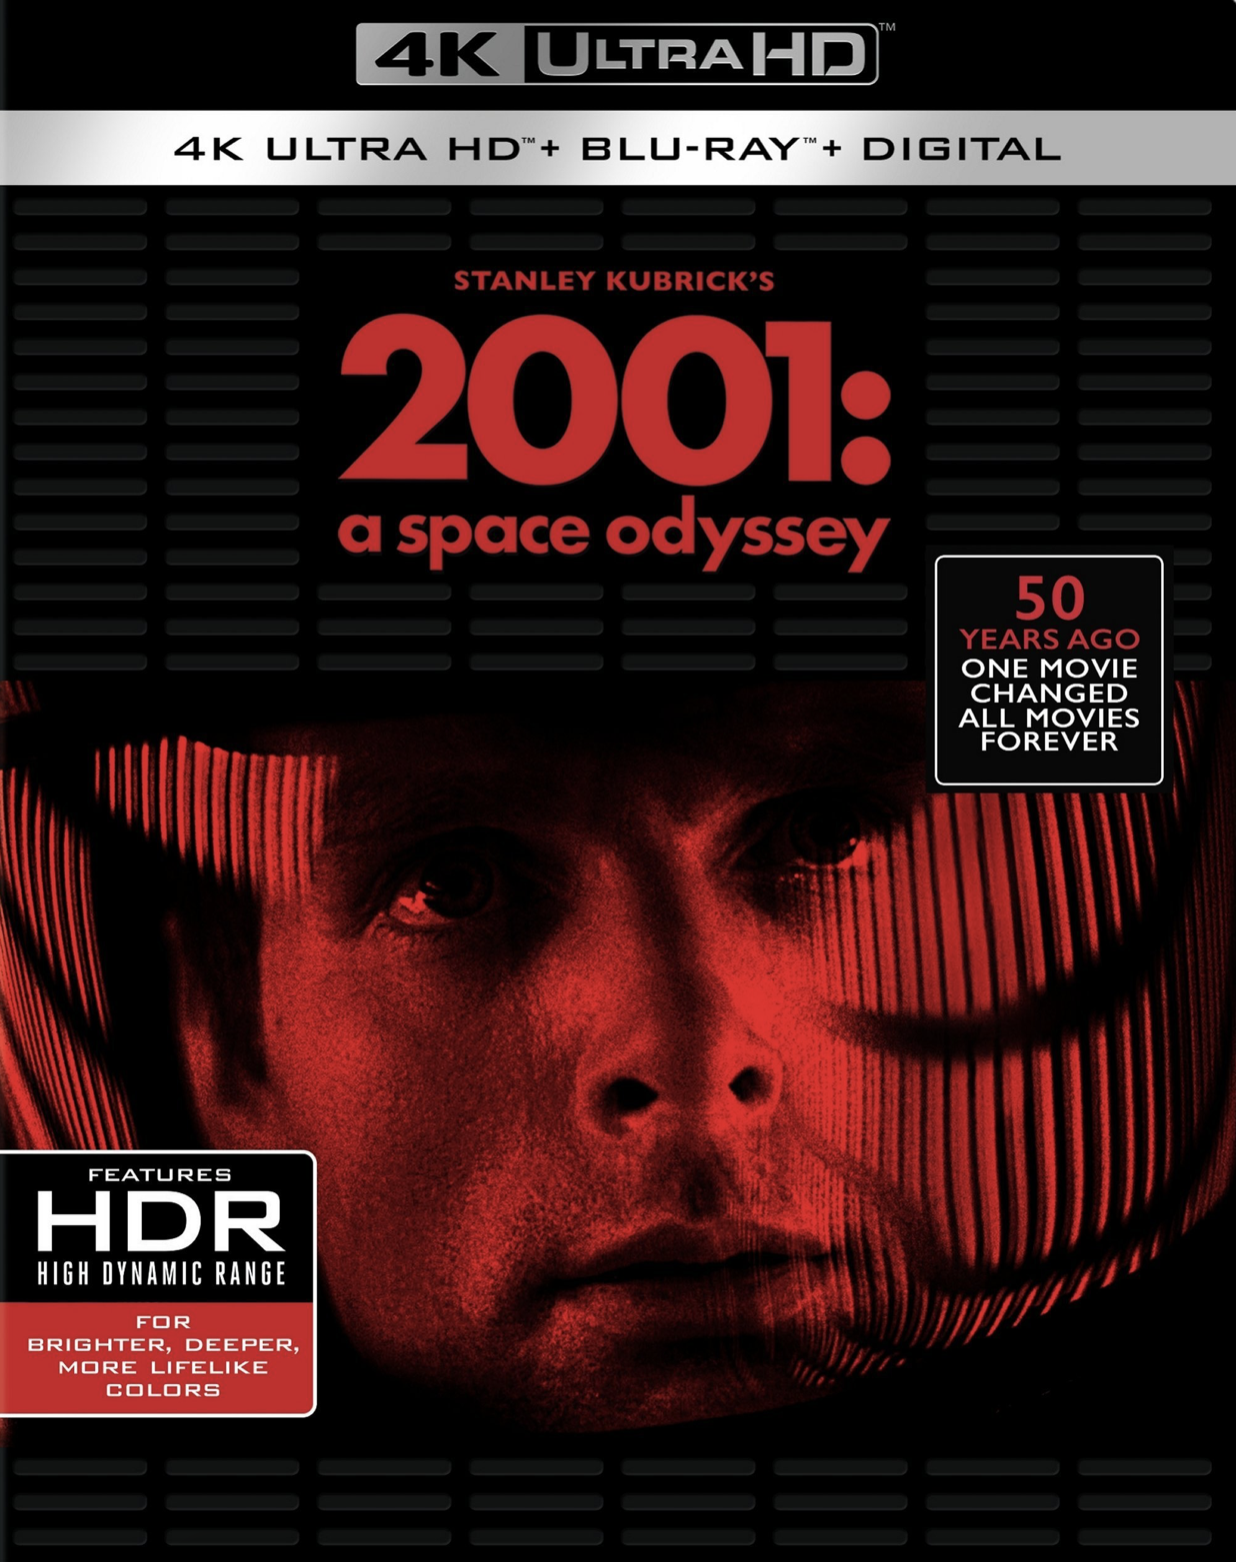 2001: A Space Odyssey/Home media